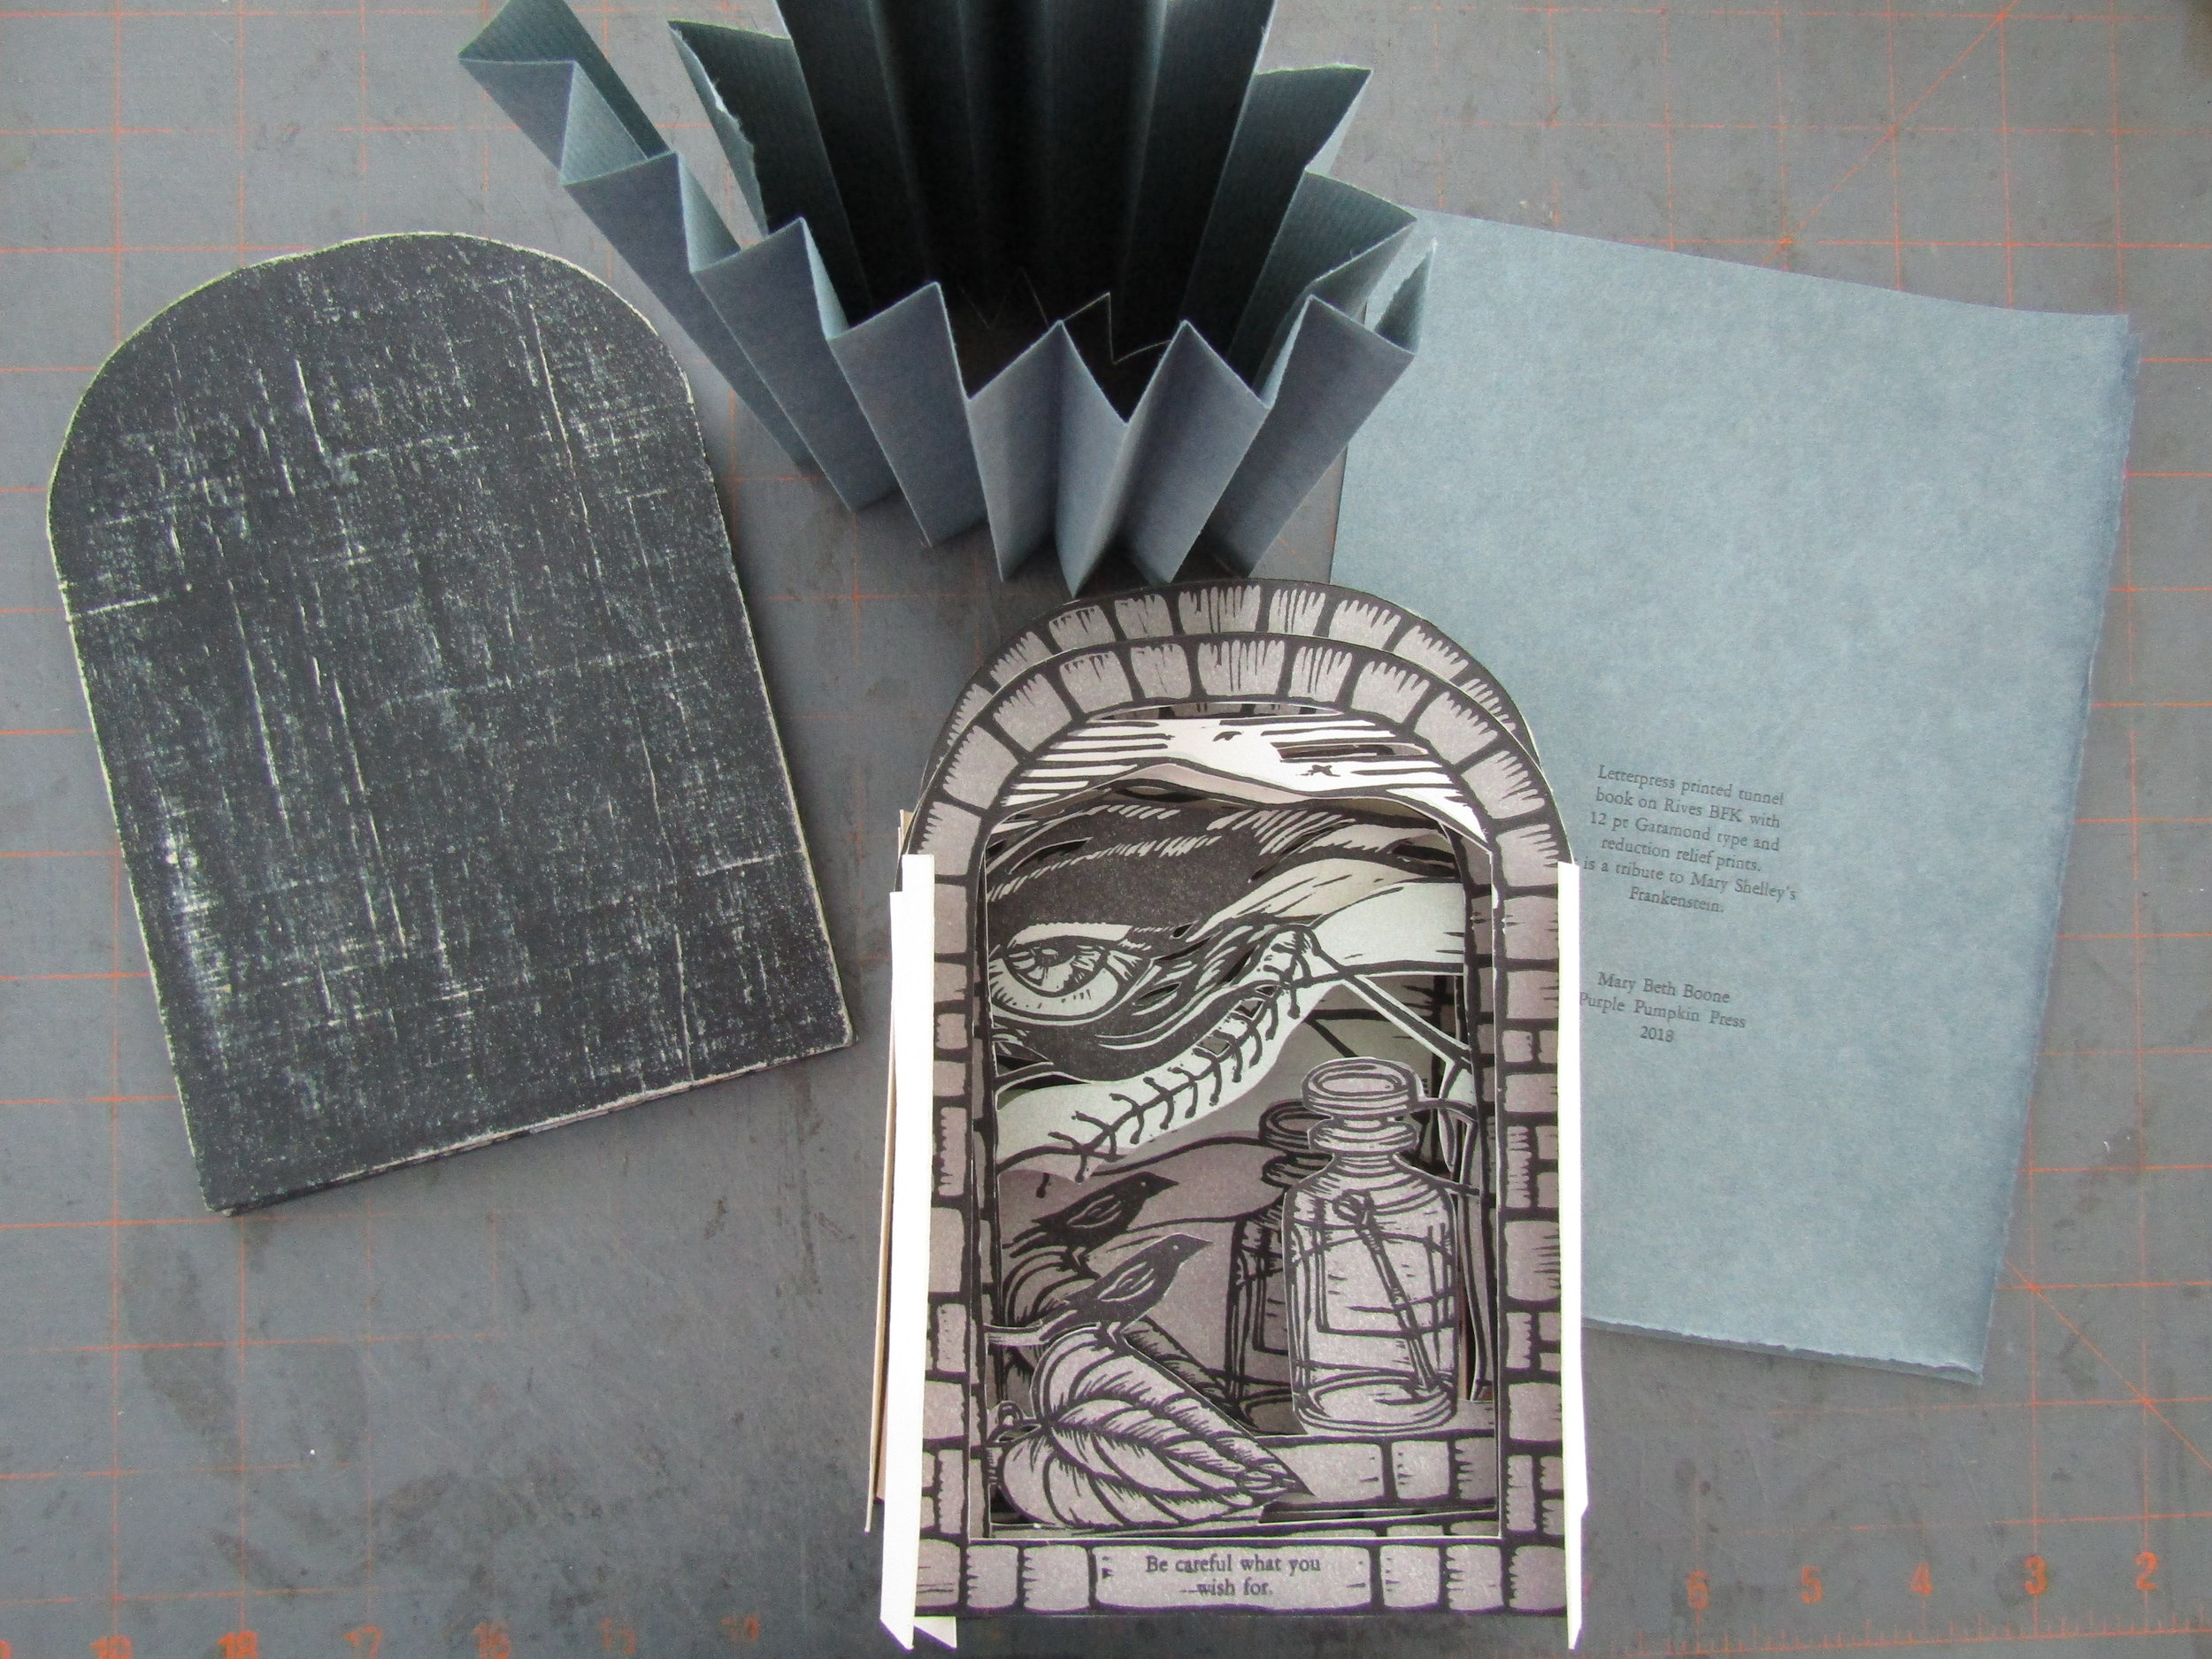 All of the components - cover boards, accordion folded sides, book pages, and letterpress printed colophon. I used 12 point Garamond for the colophon and additional text. Notice the sentence that is printed across the base of the front page. It sums up my response to  Frankenstein - Be Careful What You Wish For .